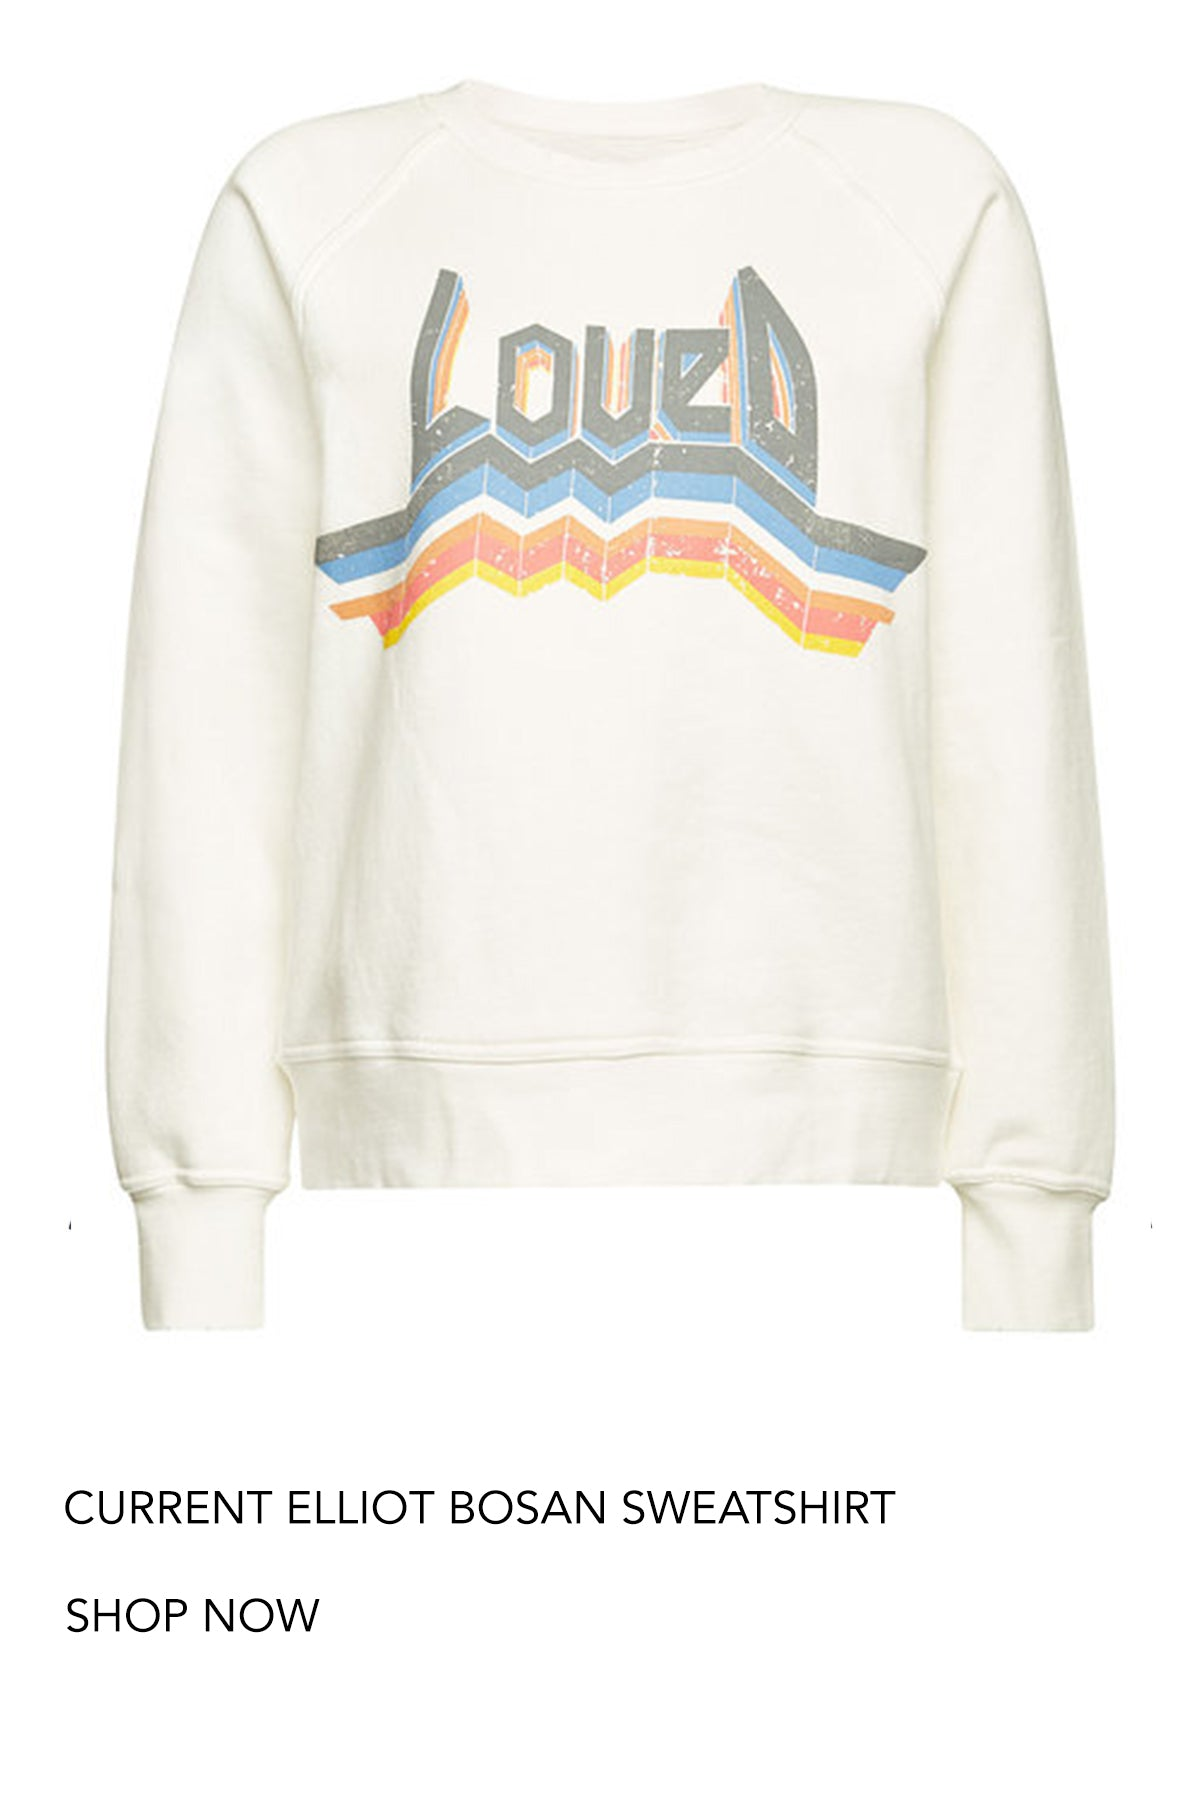 current elliot bosun sweatshirt iridescent sea beach house cottesloe perth australia fashion